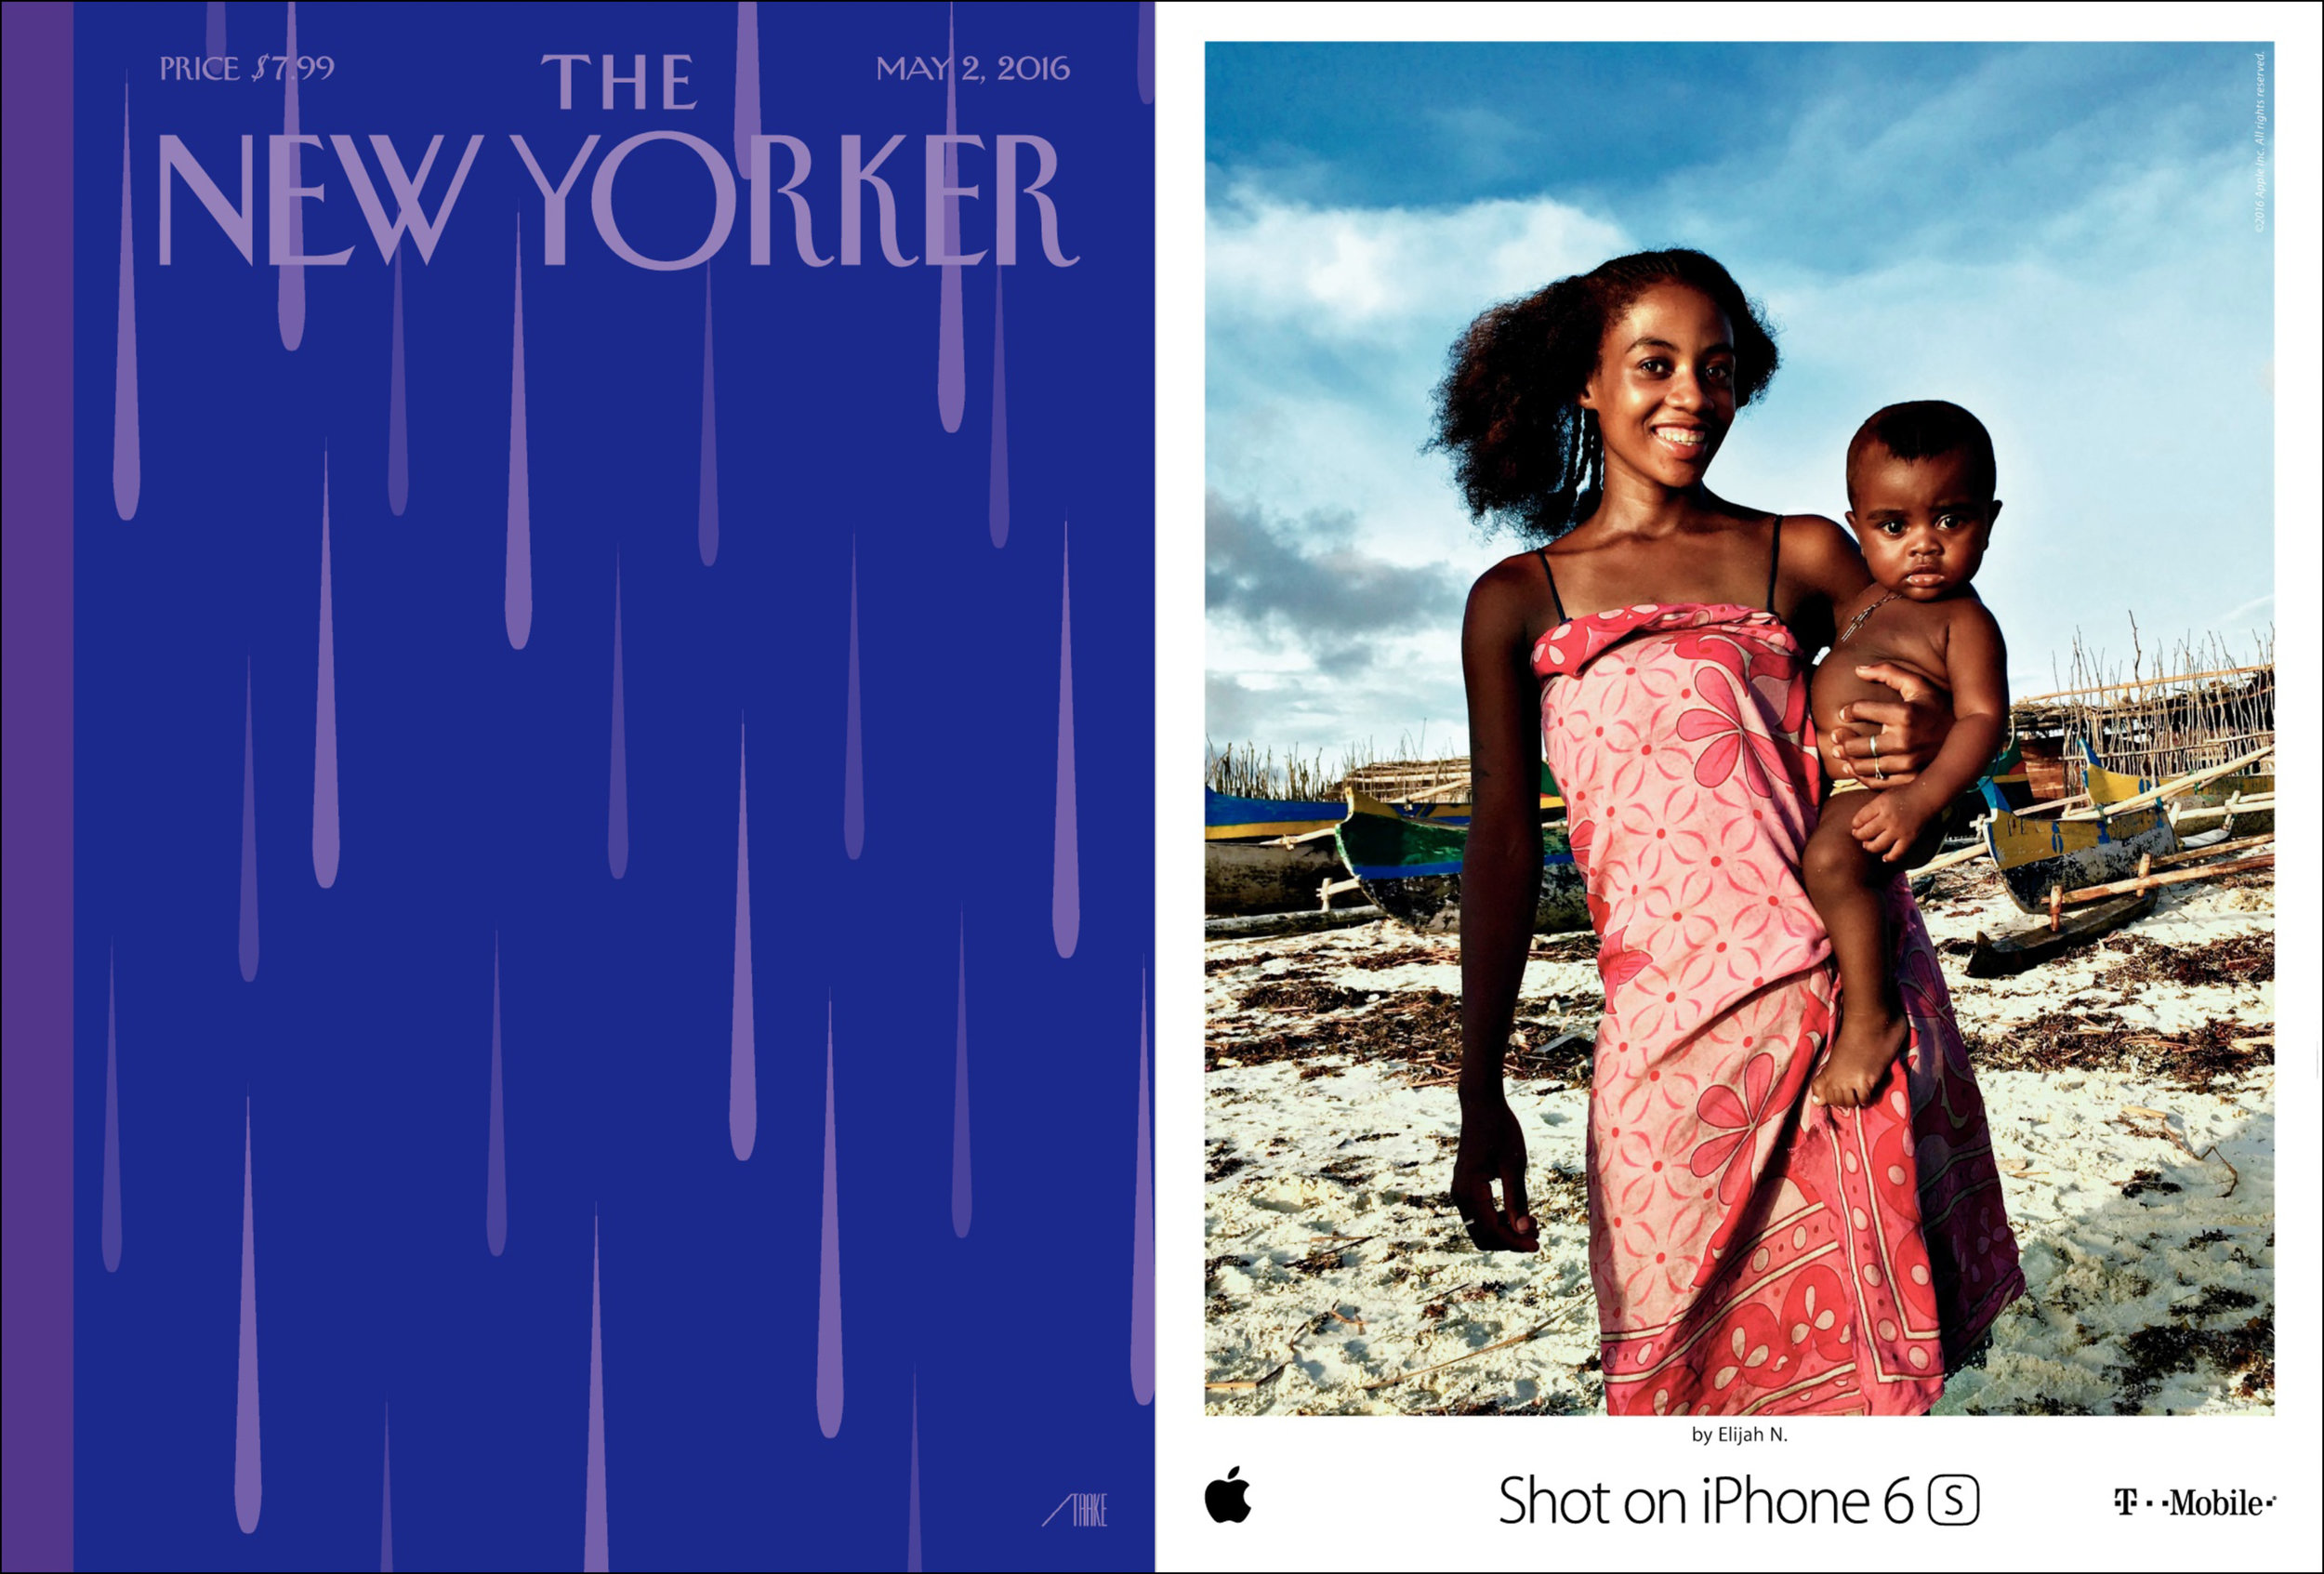 Apple 'Shot on iPhone 6s' OOH campaign, New Yorker, May 2, 2016